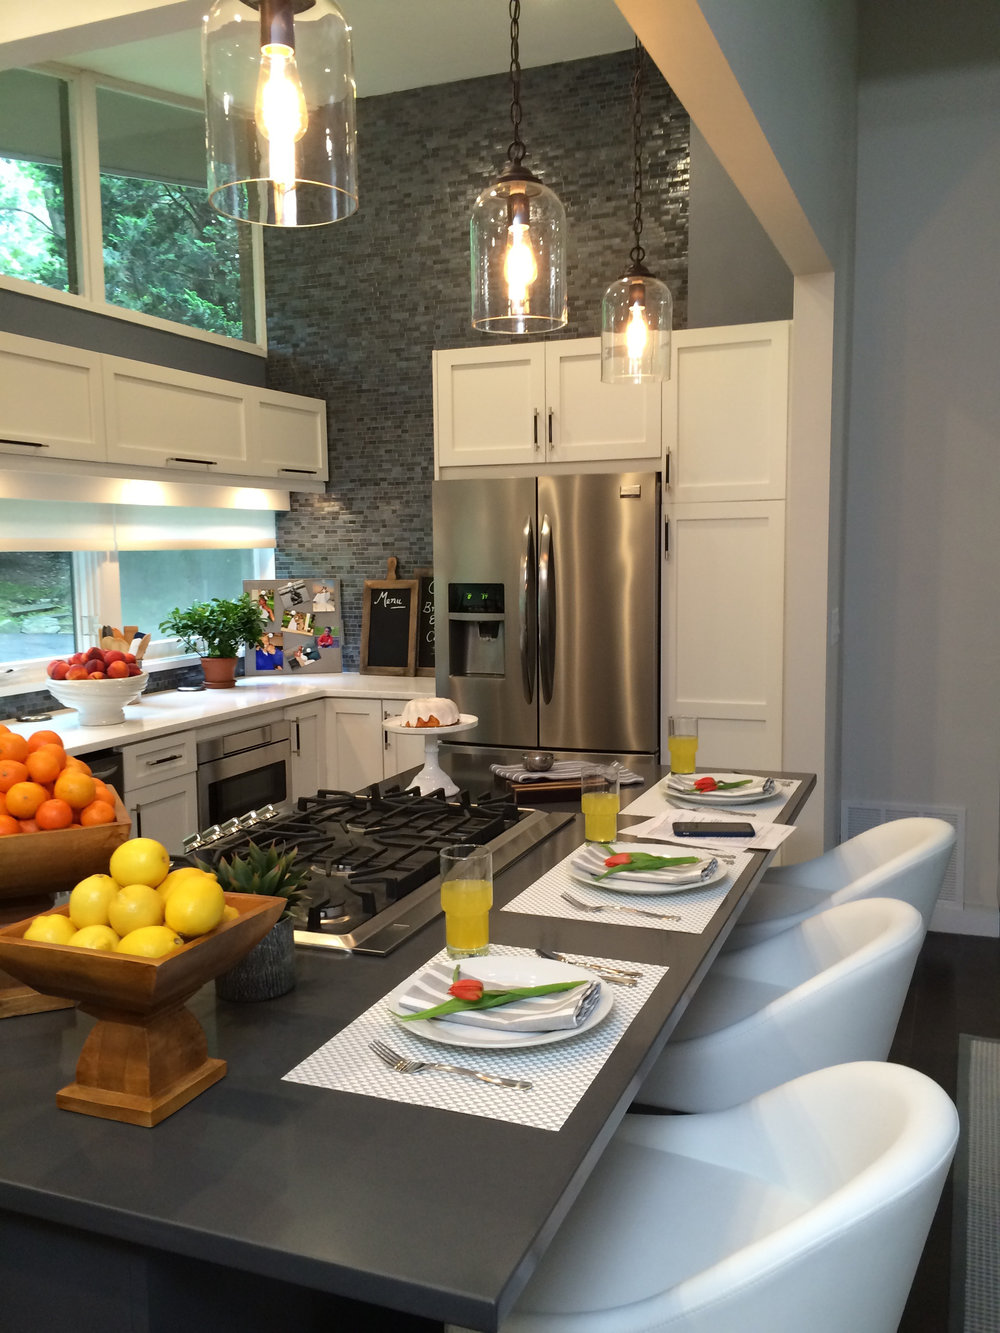 Kim A Mitchell_Design Lead_HGTV_The Property Brothers_Season 6_Episode 9_Kitchen_Blue Glass Tile Backsplash_Emtek Hardware_Glass Pendants_Modern Kitchen_2017.jpg